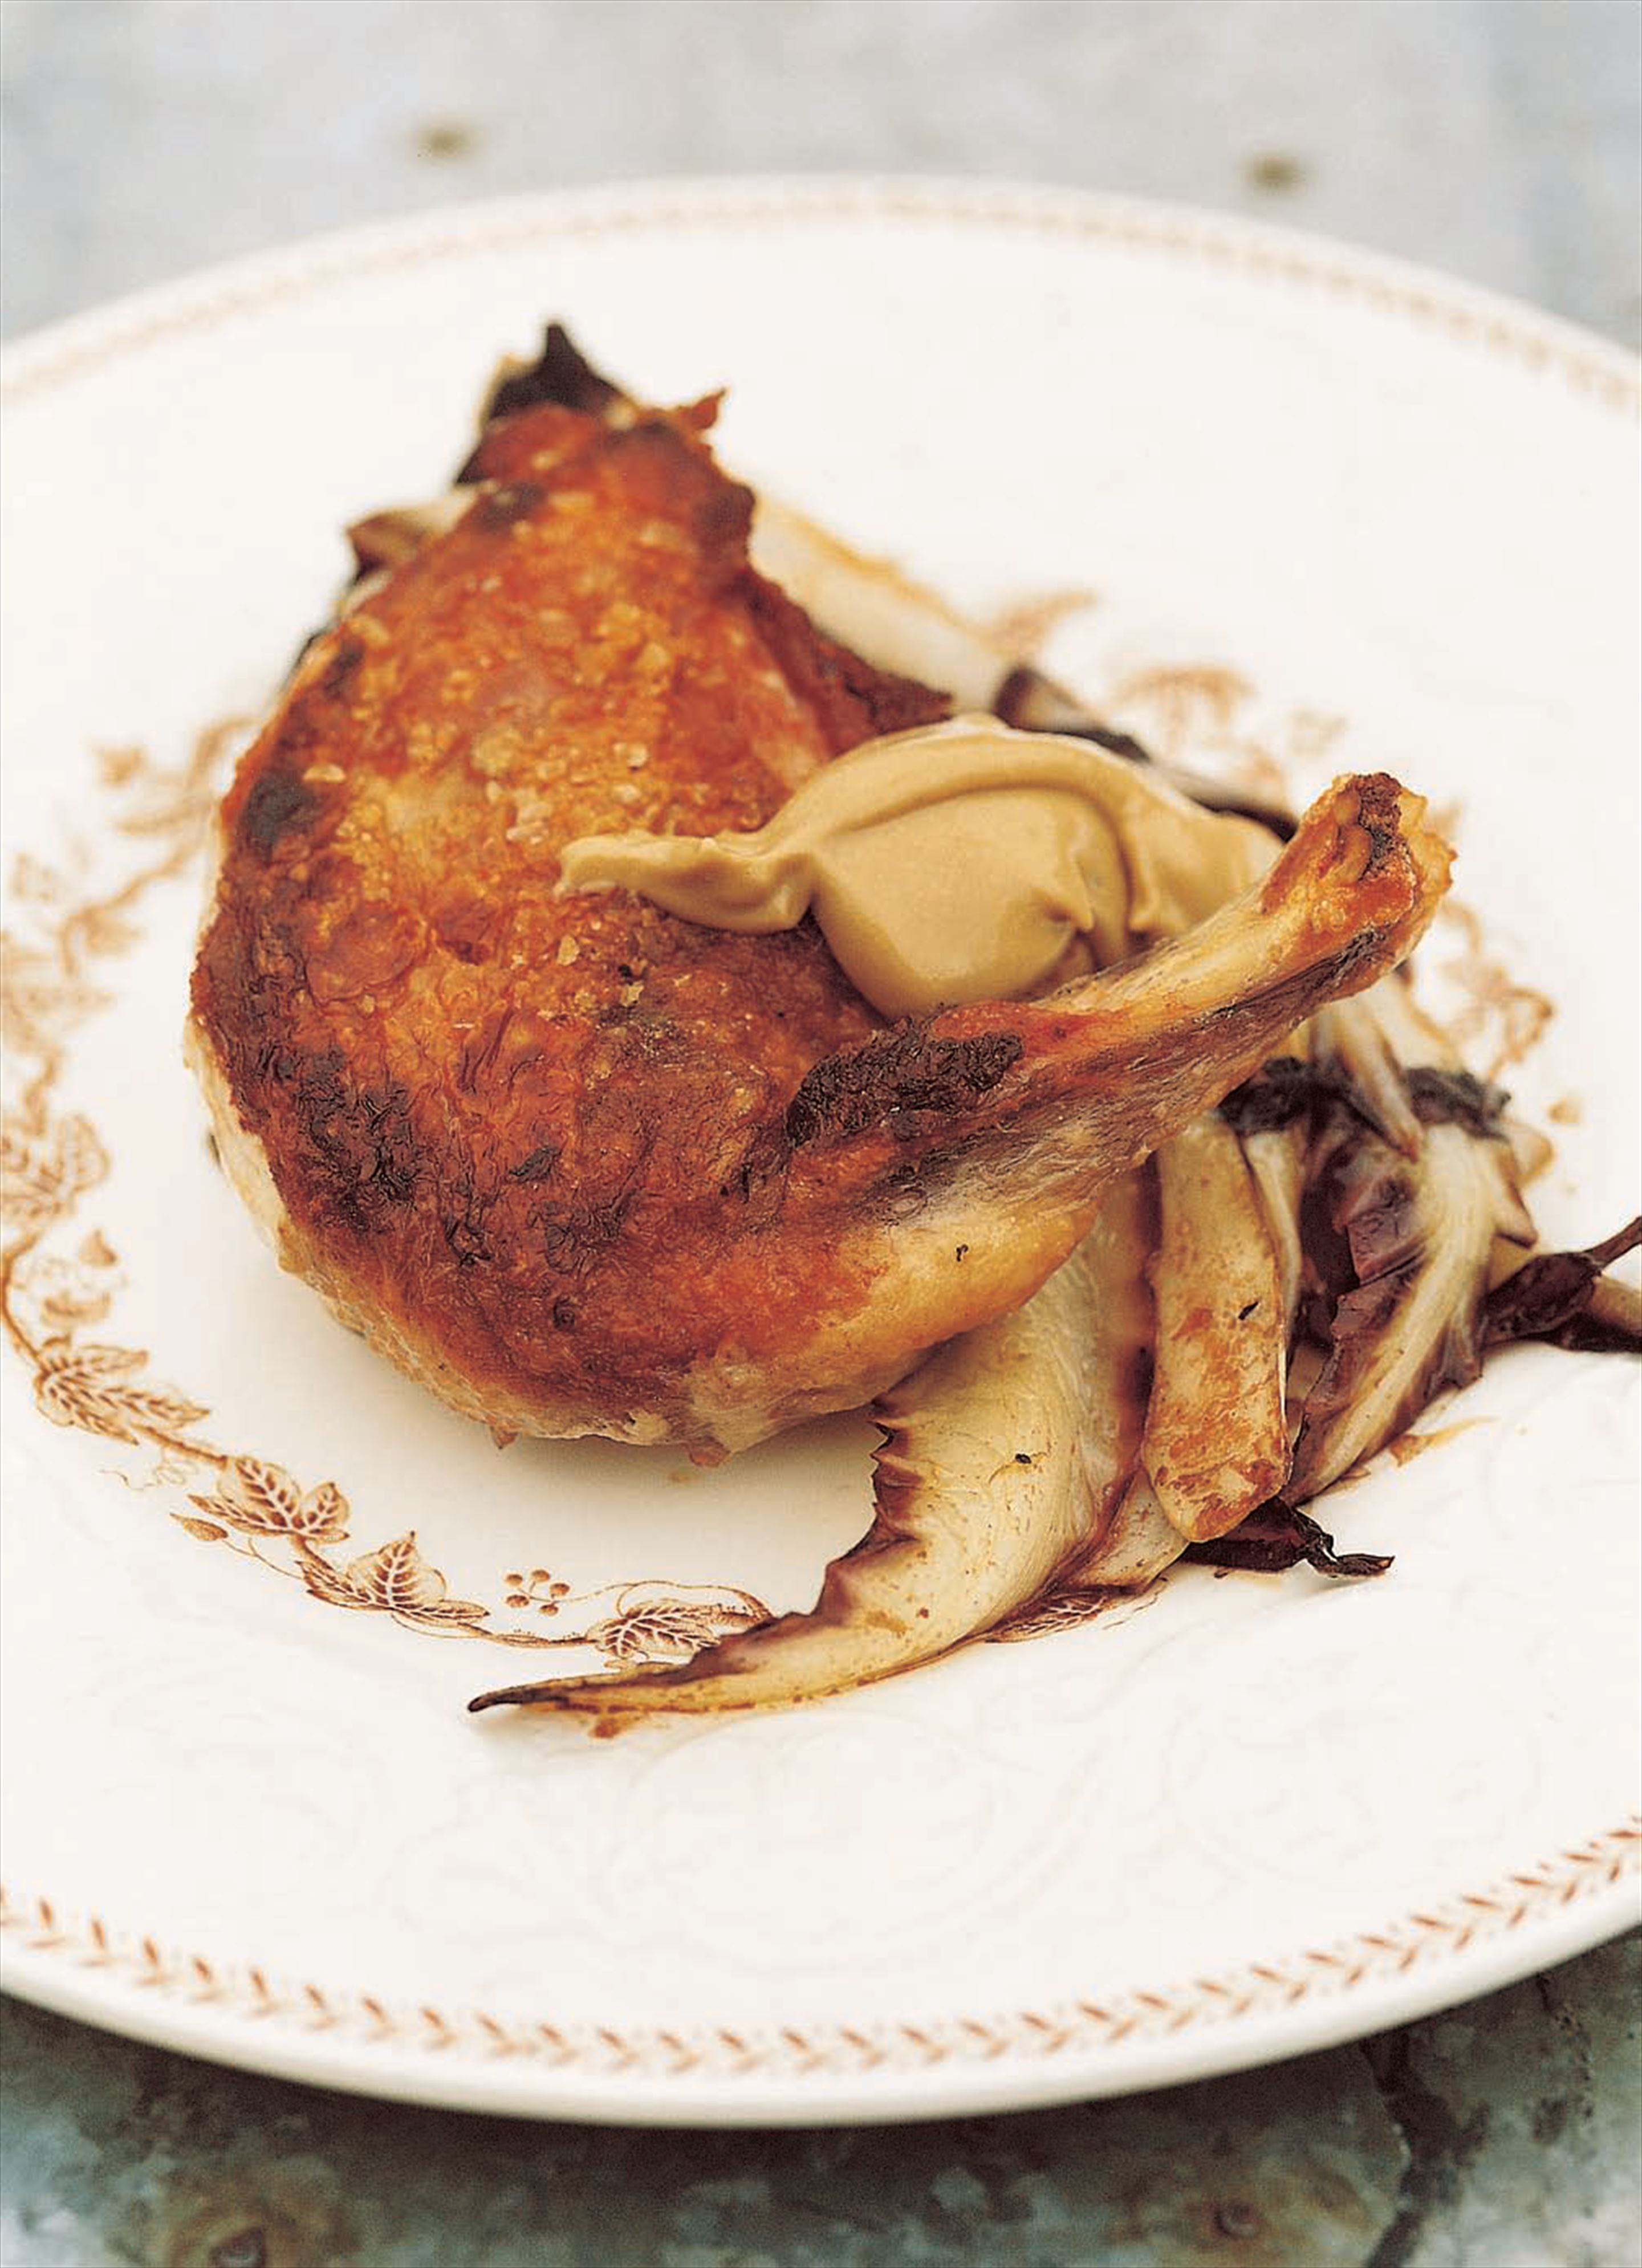 Guinea fowl supremes with braised tardivo and balsamic mayonnaise